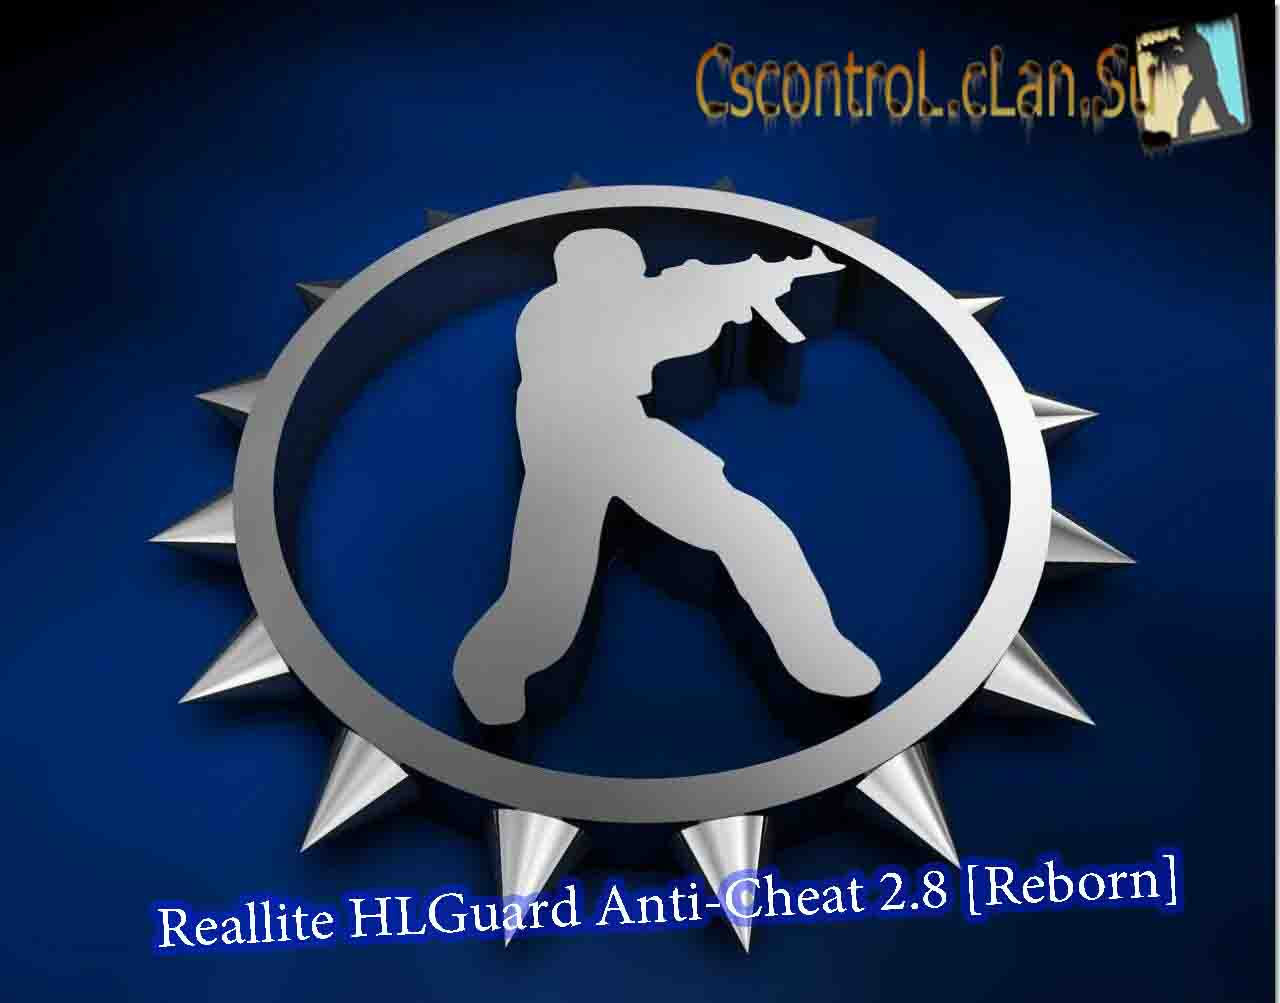 Reallite HLGuard Anti-Cheat 2.8 [Reborn]